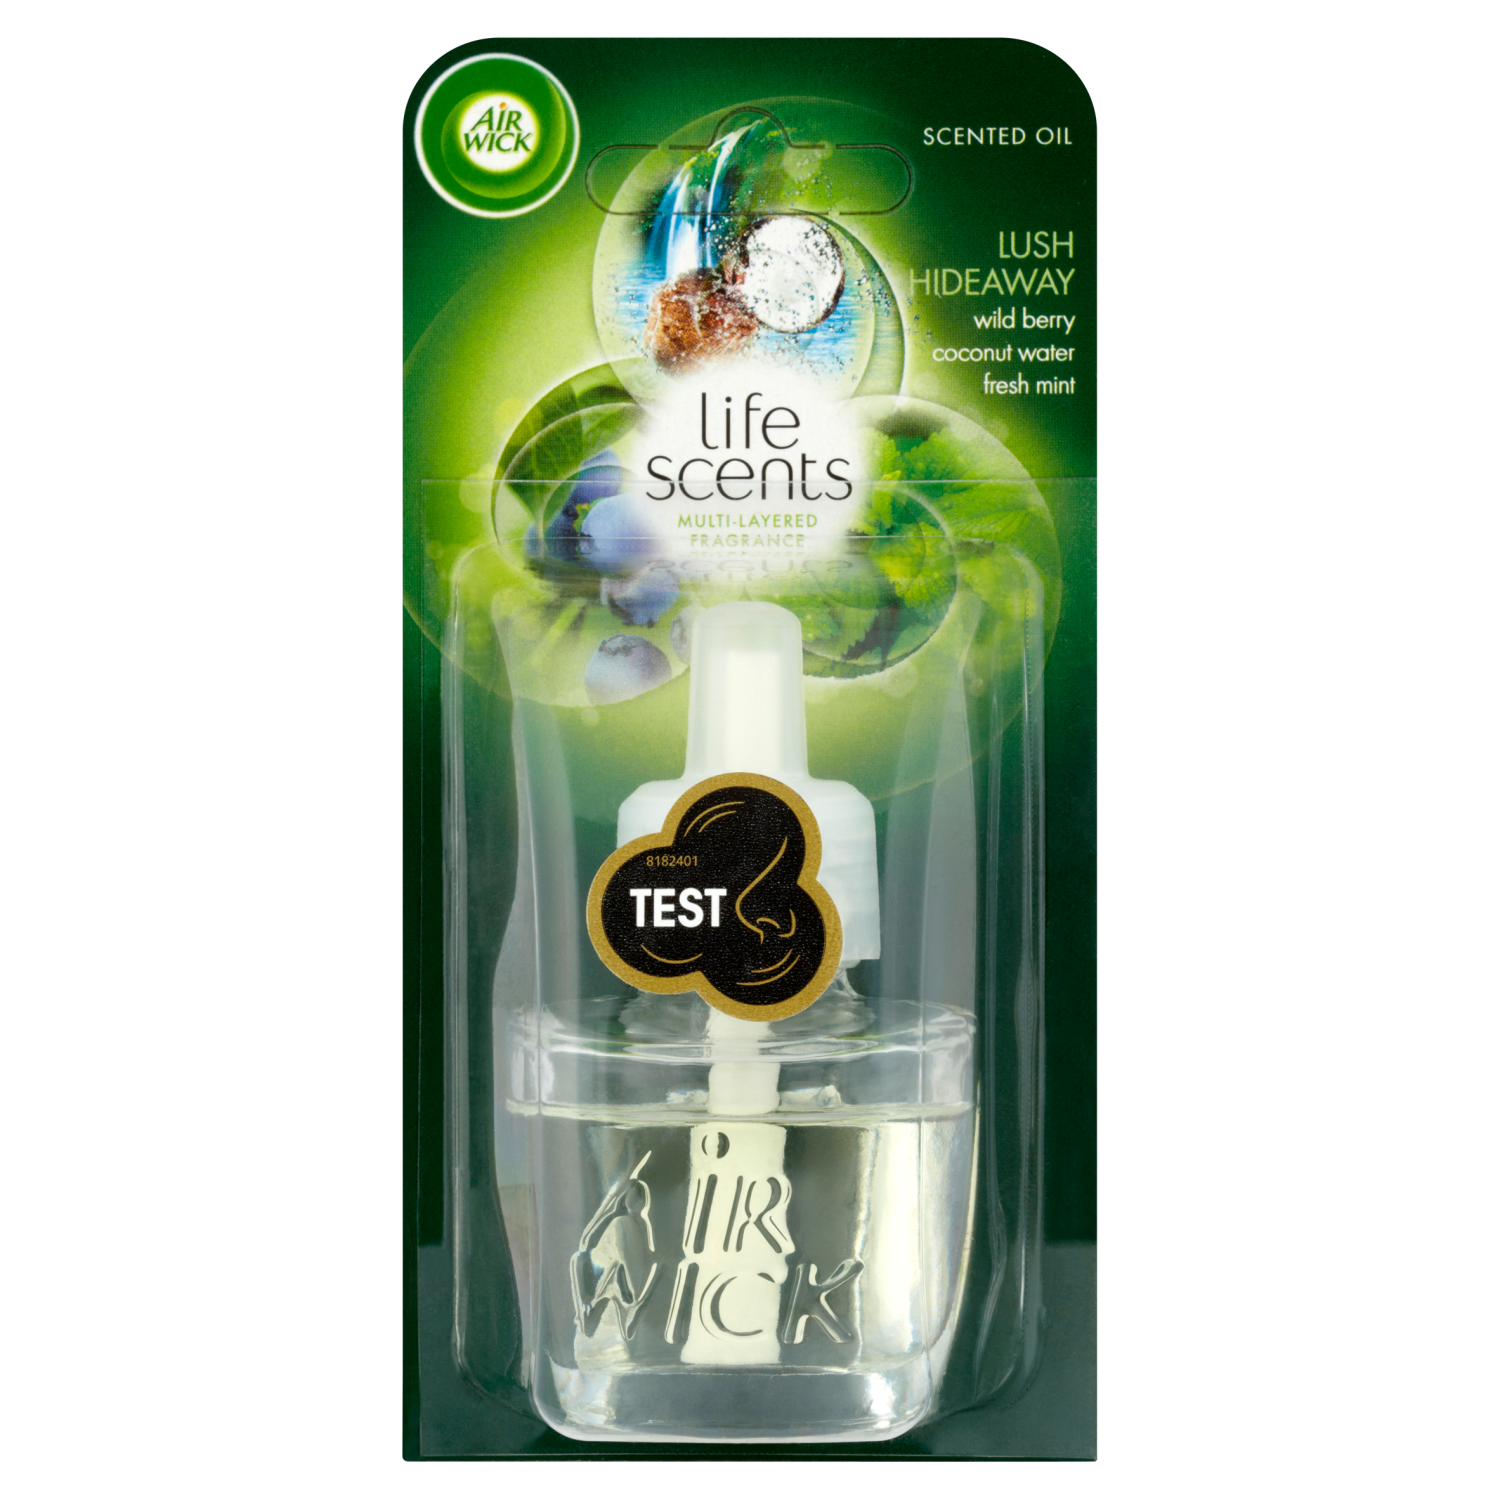 Air Wick Plug-in Refill Life Scents™ Lush Hideaway